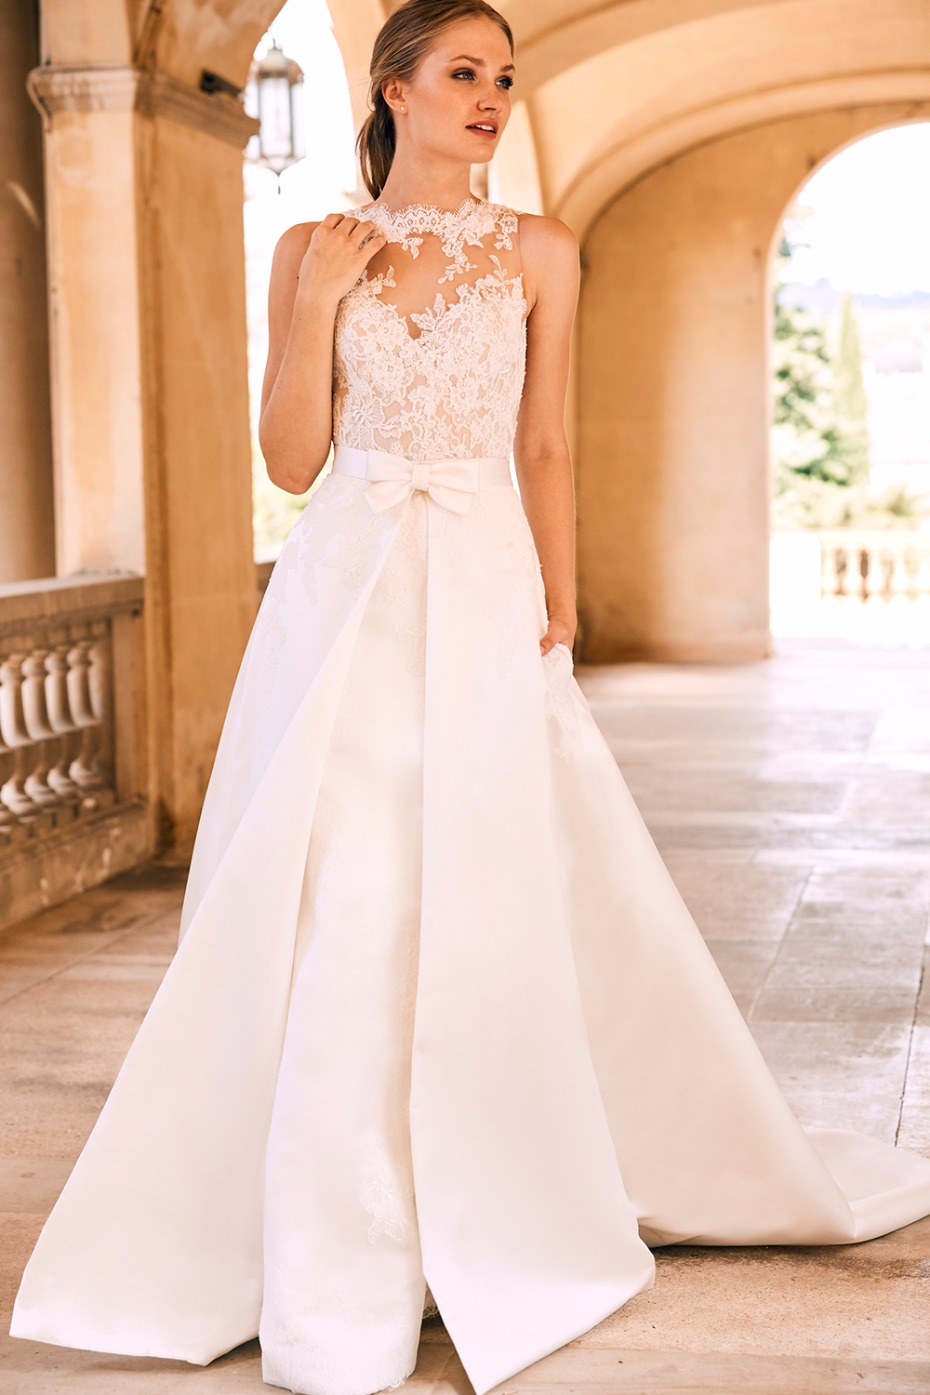 long wedding dress with detachable train and bow around the waist